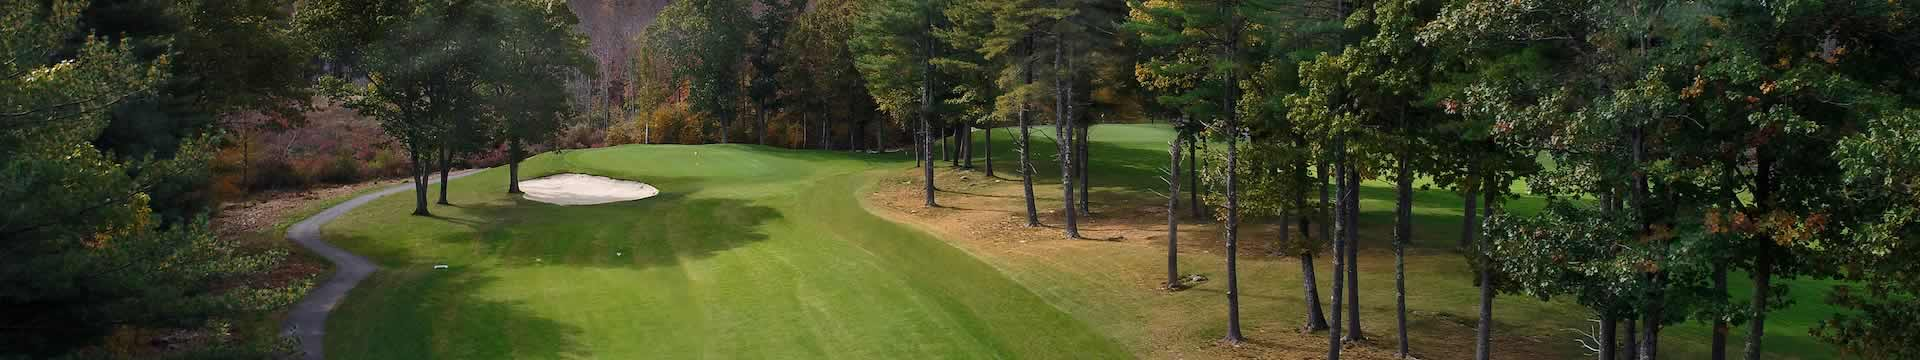 breakfast hill golf course new hampshire 4a